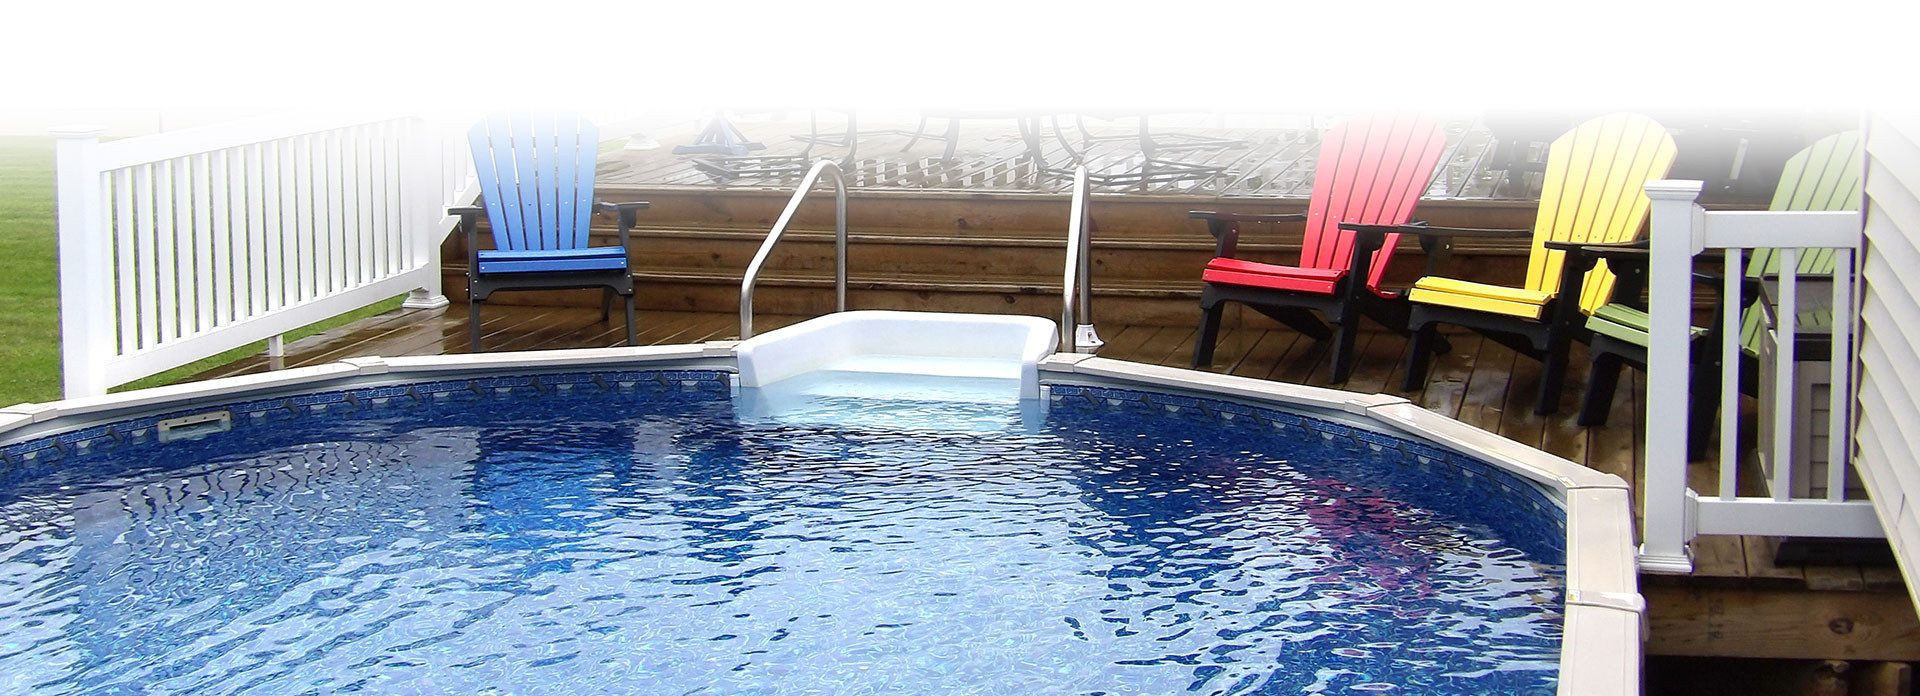 Best ideas about Above Ground Pool Frame Replacement Parts . Save or Pin Pools Doughboy Pool Parts For Inspiring Small Swimming Now.